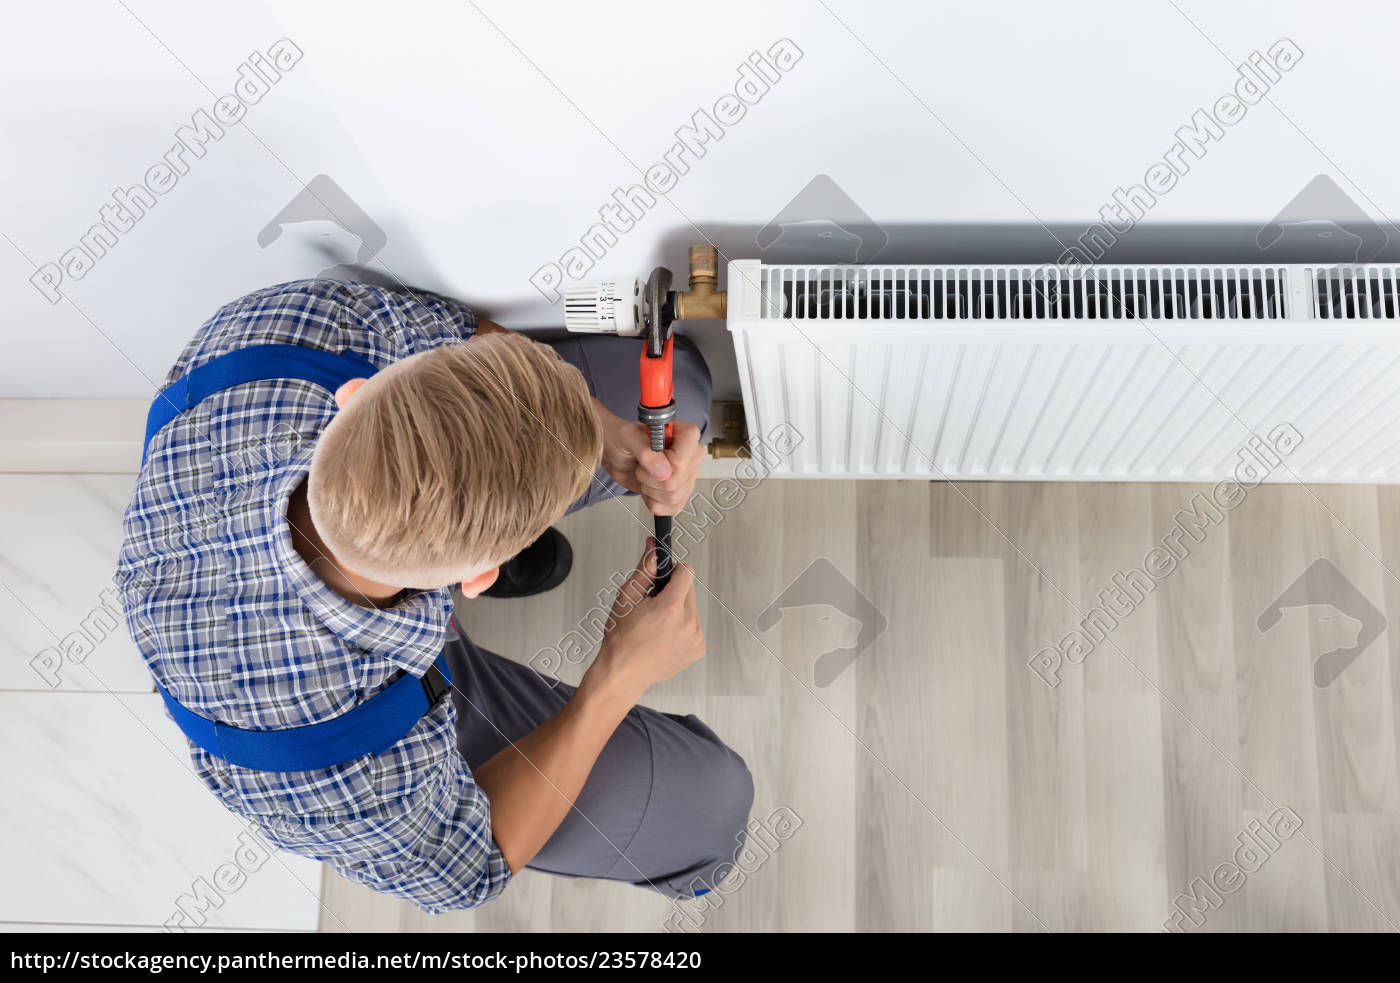 male, plumber, fixing, thermostat, using, wrench - 23578420